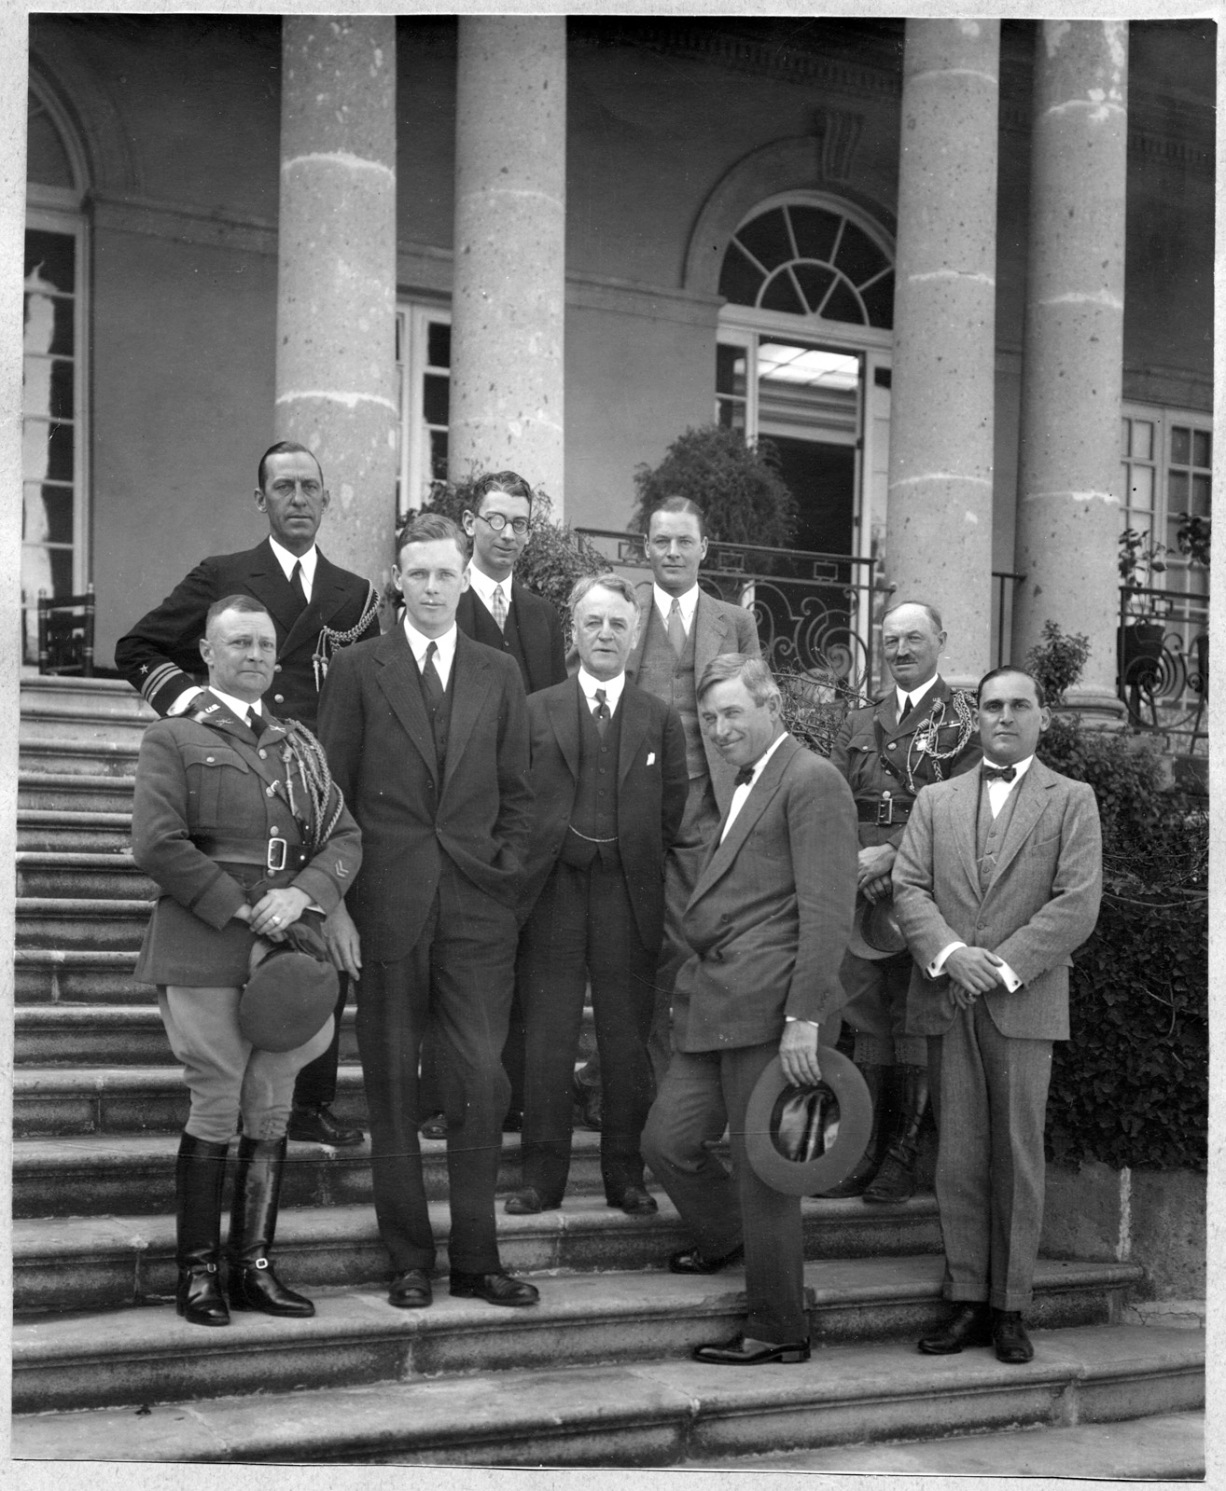 Ambassador Morrow, with his specially-chosen team of American envoys, including aviator Charles Lindbergh and humorist Will Rogers, Mexico City, 1927. http://consecratedeminence.wordpress.com/2014/03/16/the-lone-eagle-meets-the-ham-eggs-diplomat/.